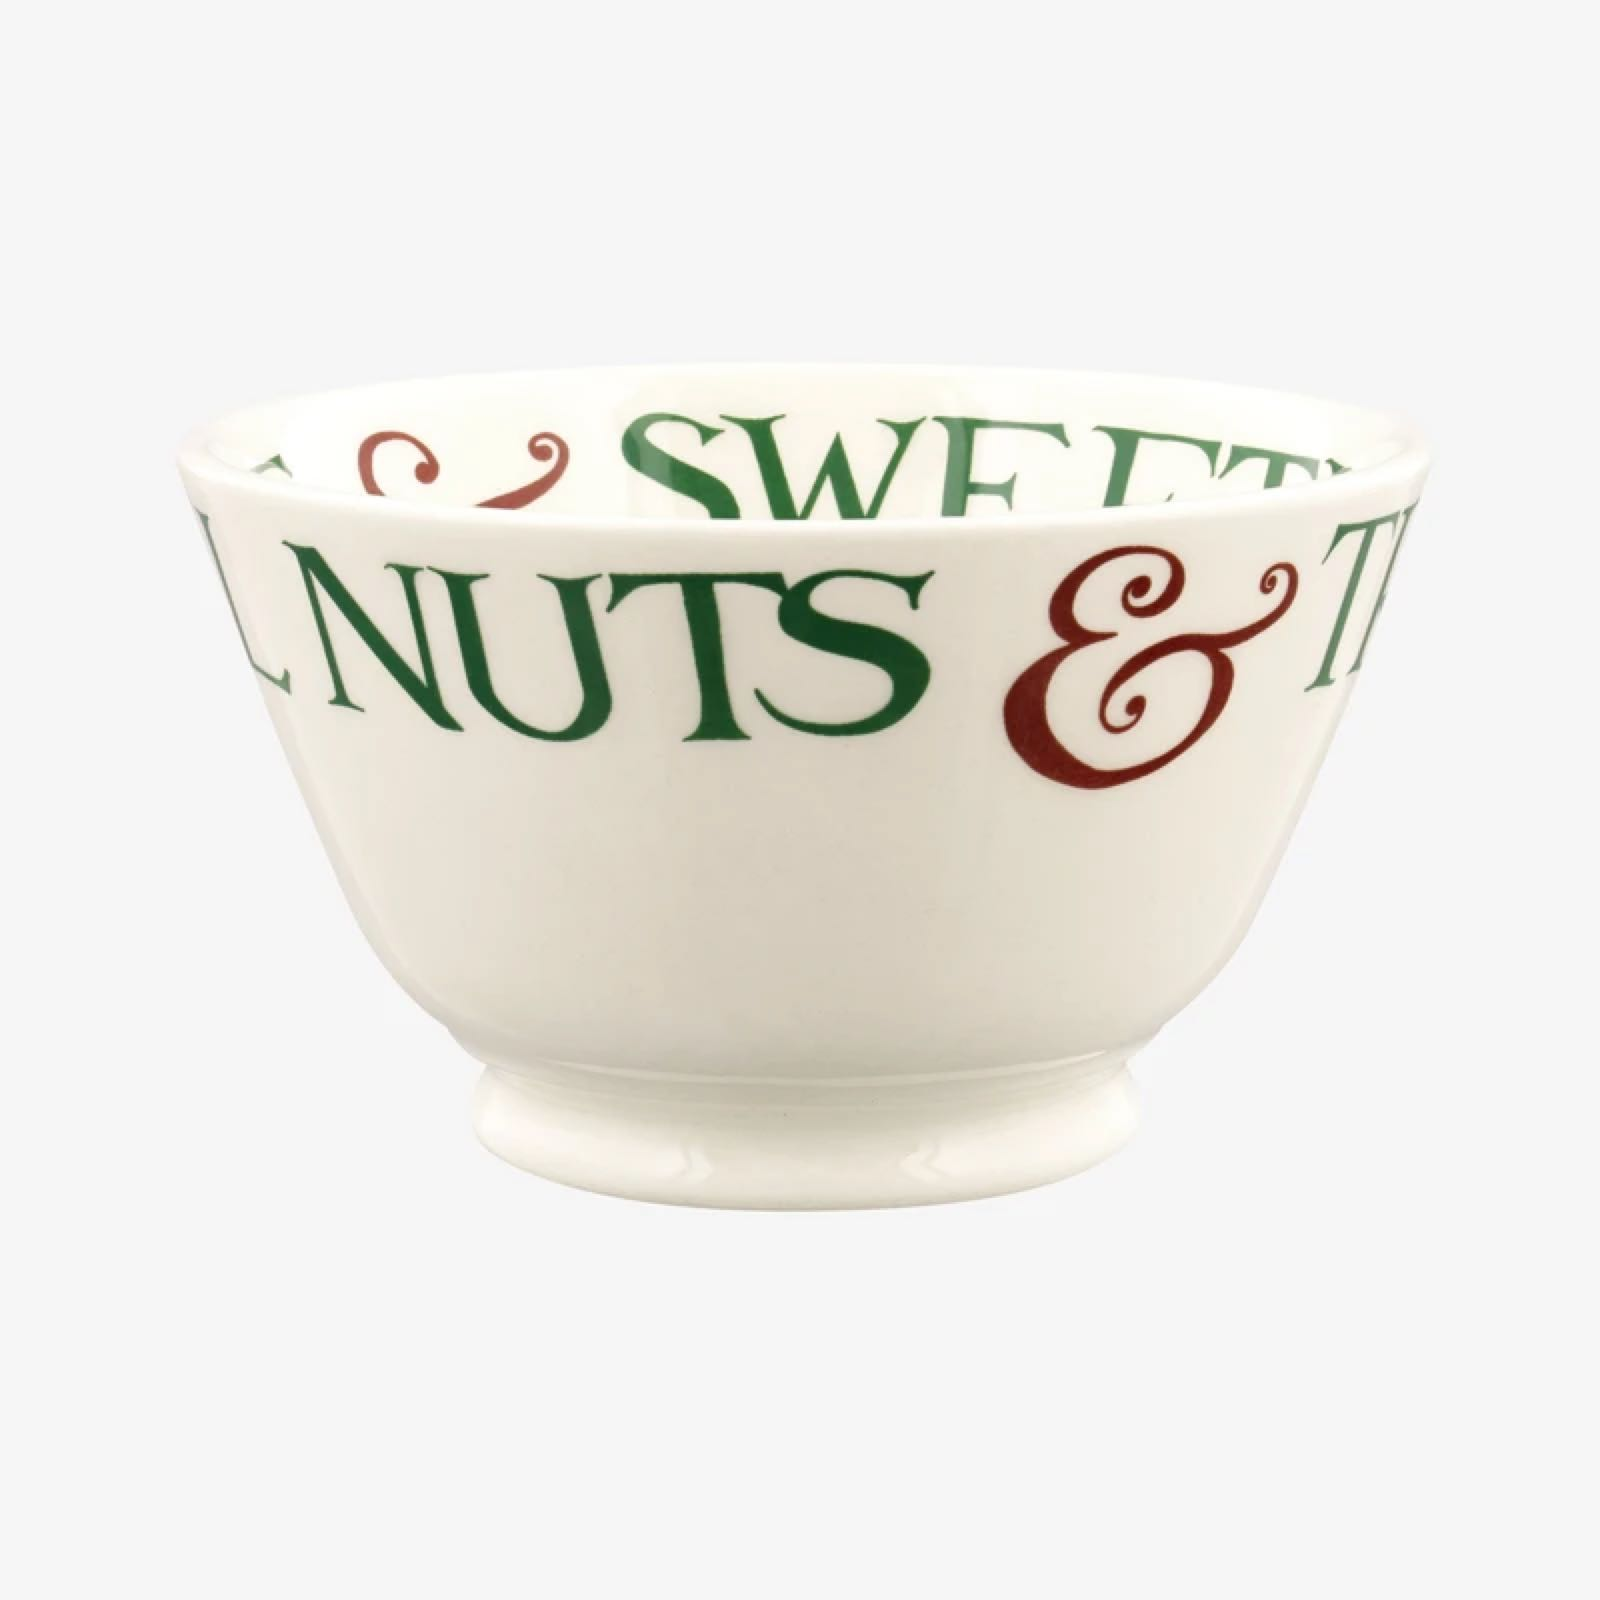 Emma bridgewater Christmas toast & marmalade Brazil nuts, sweets and chocolate small bowl